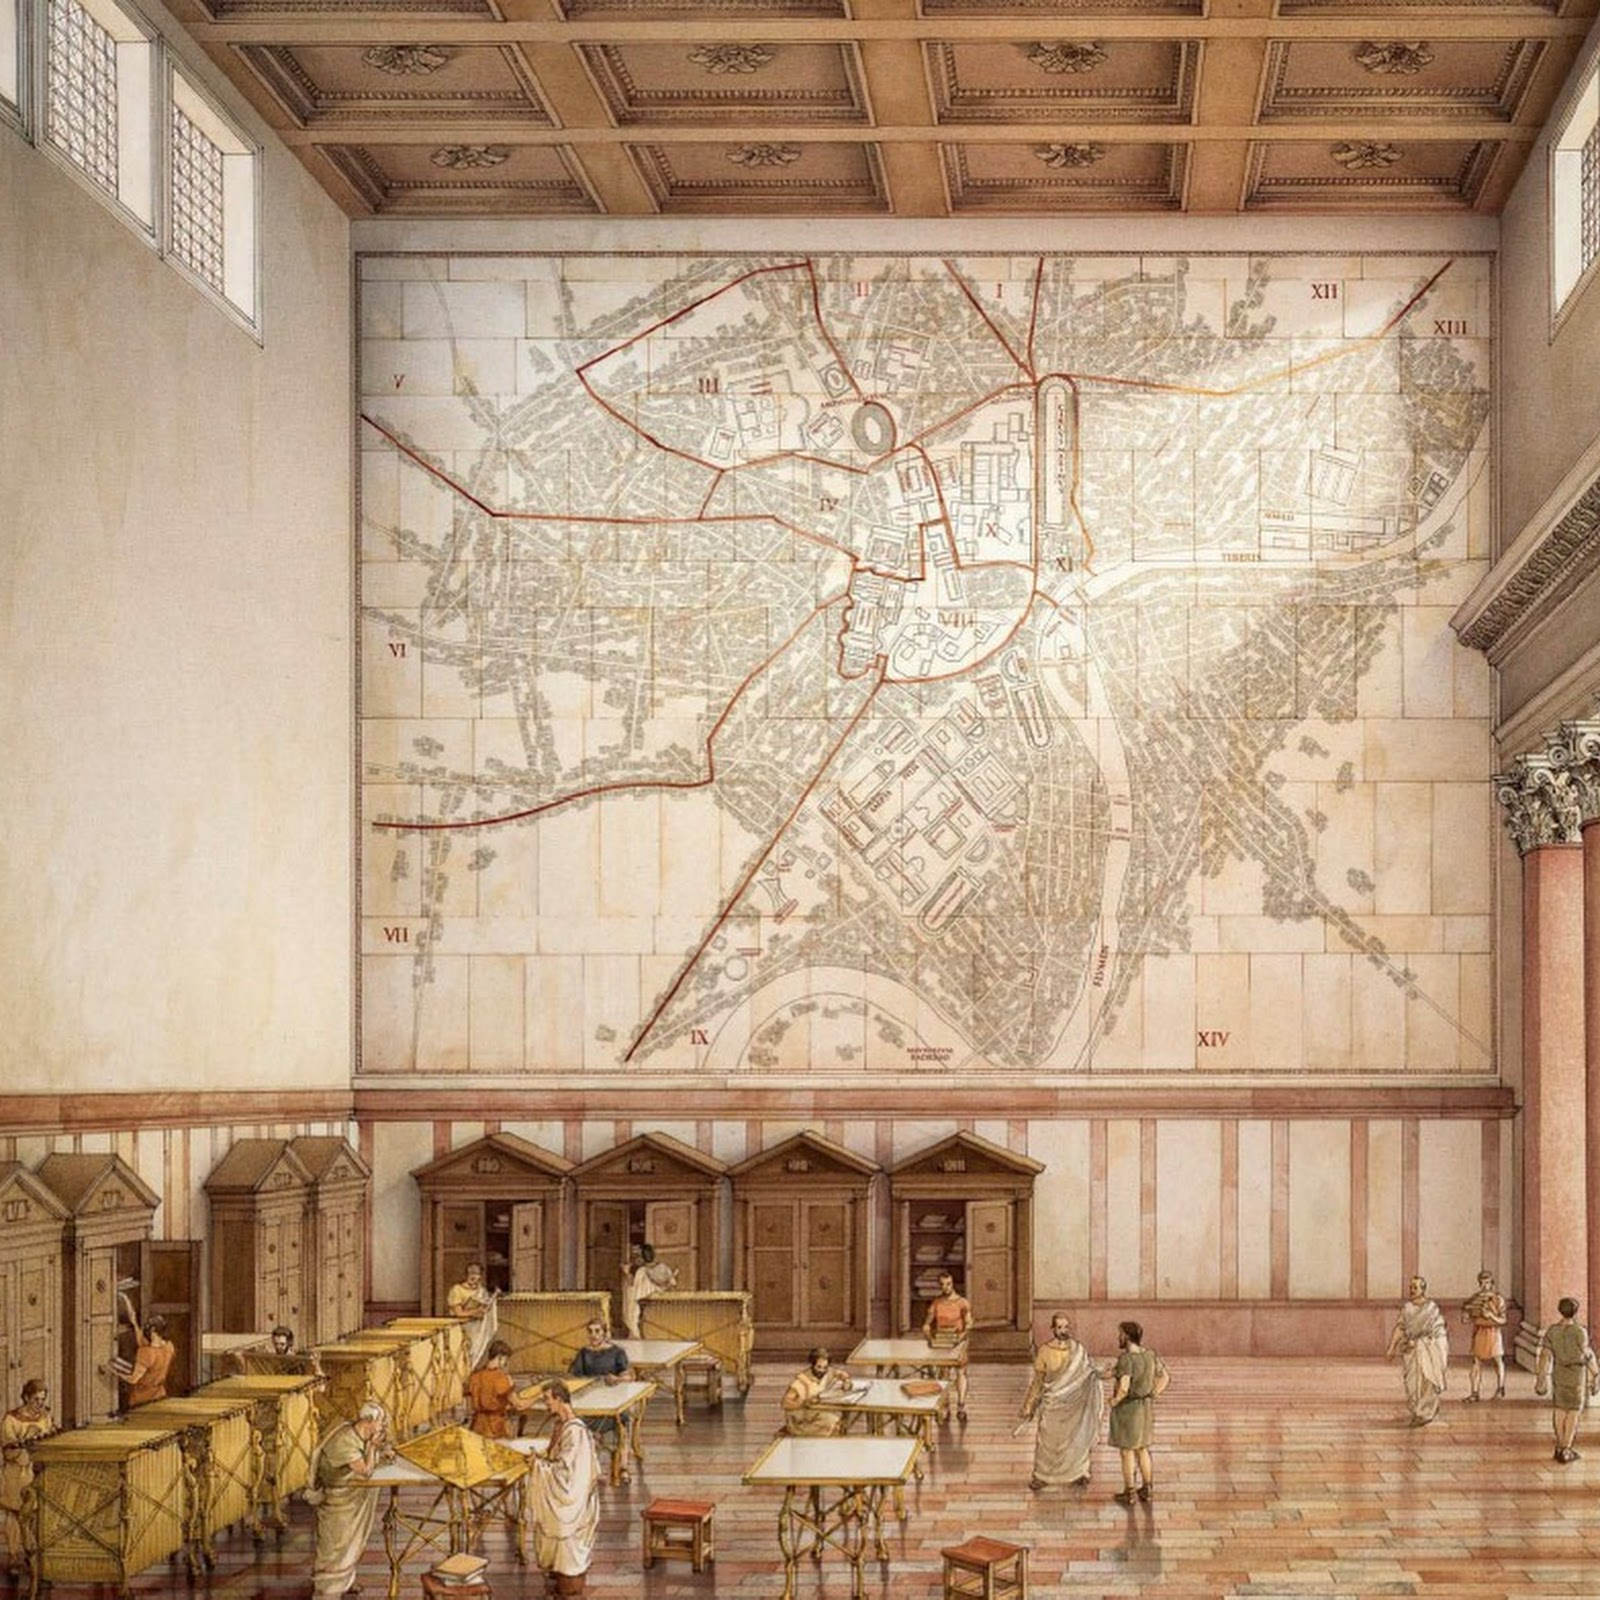 Forma Urbis: Rome's Giant Marble Map